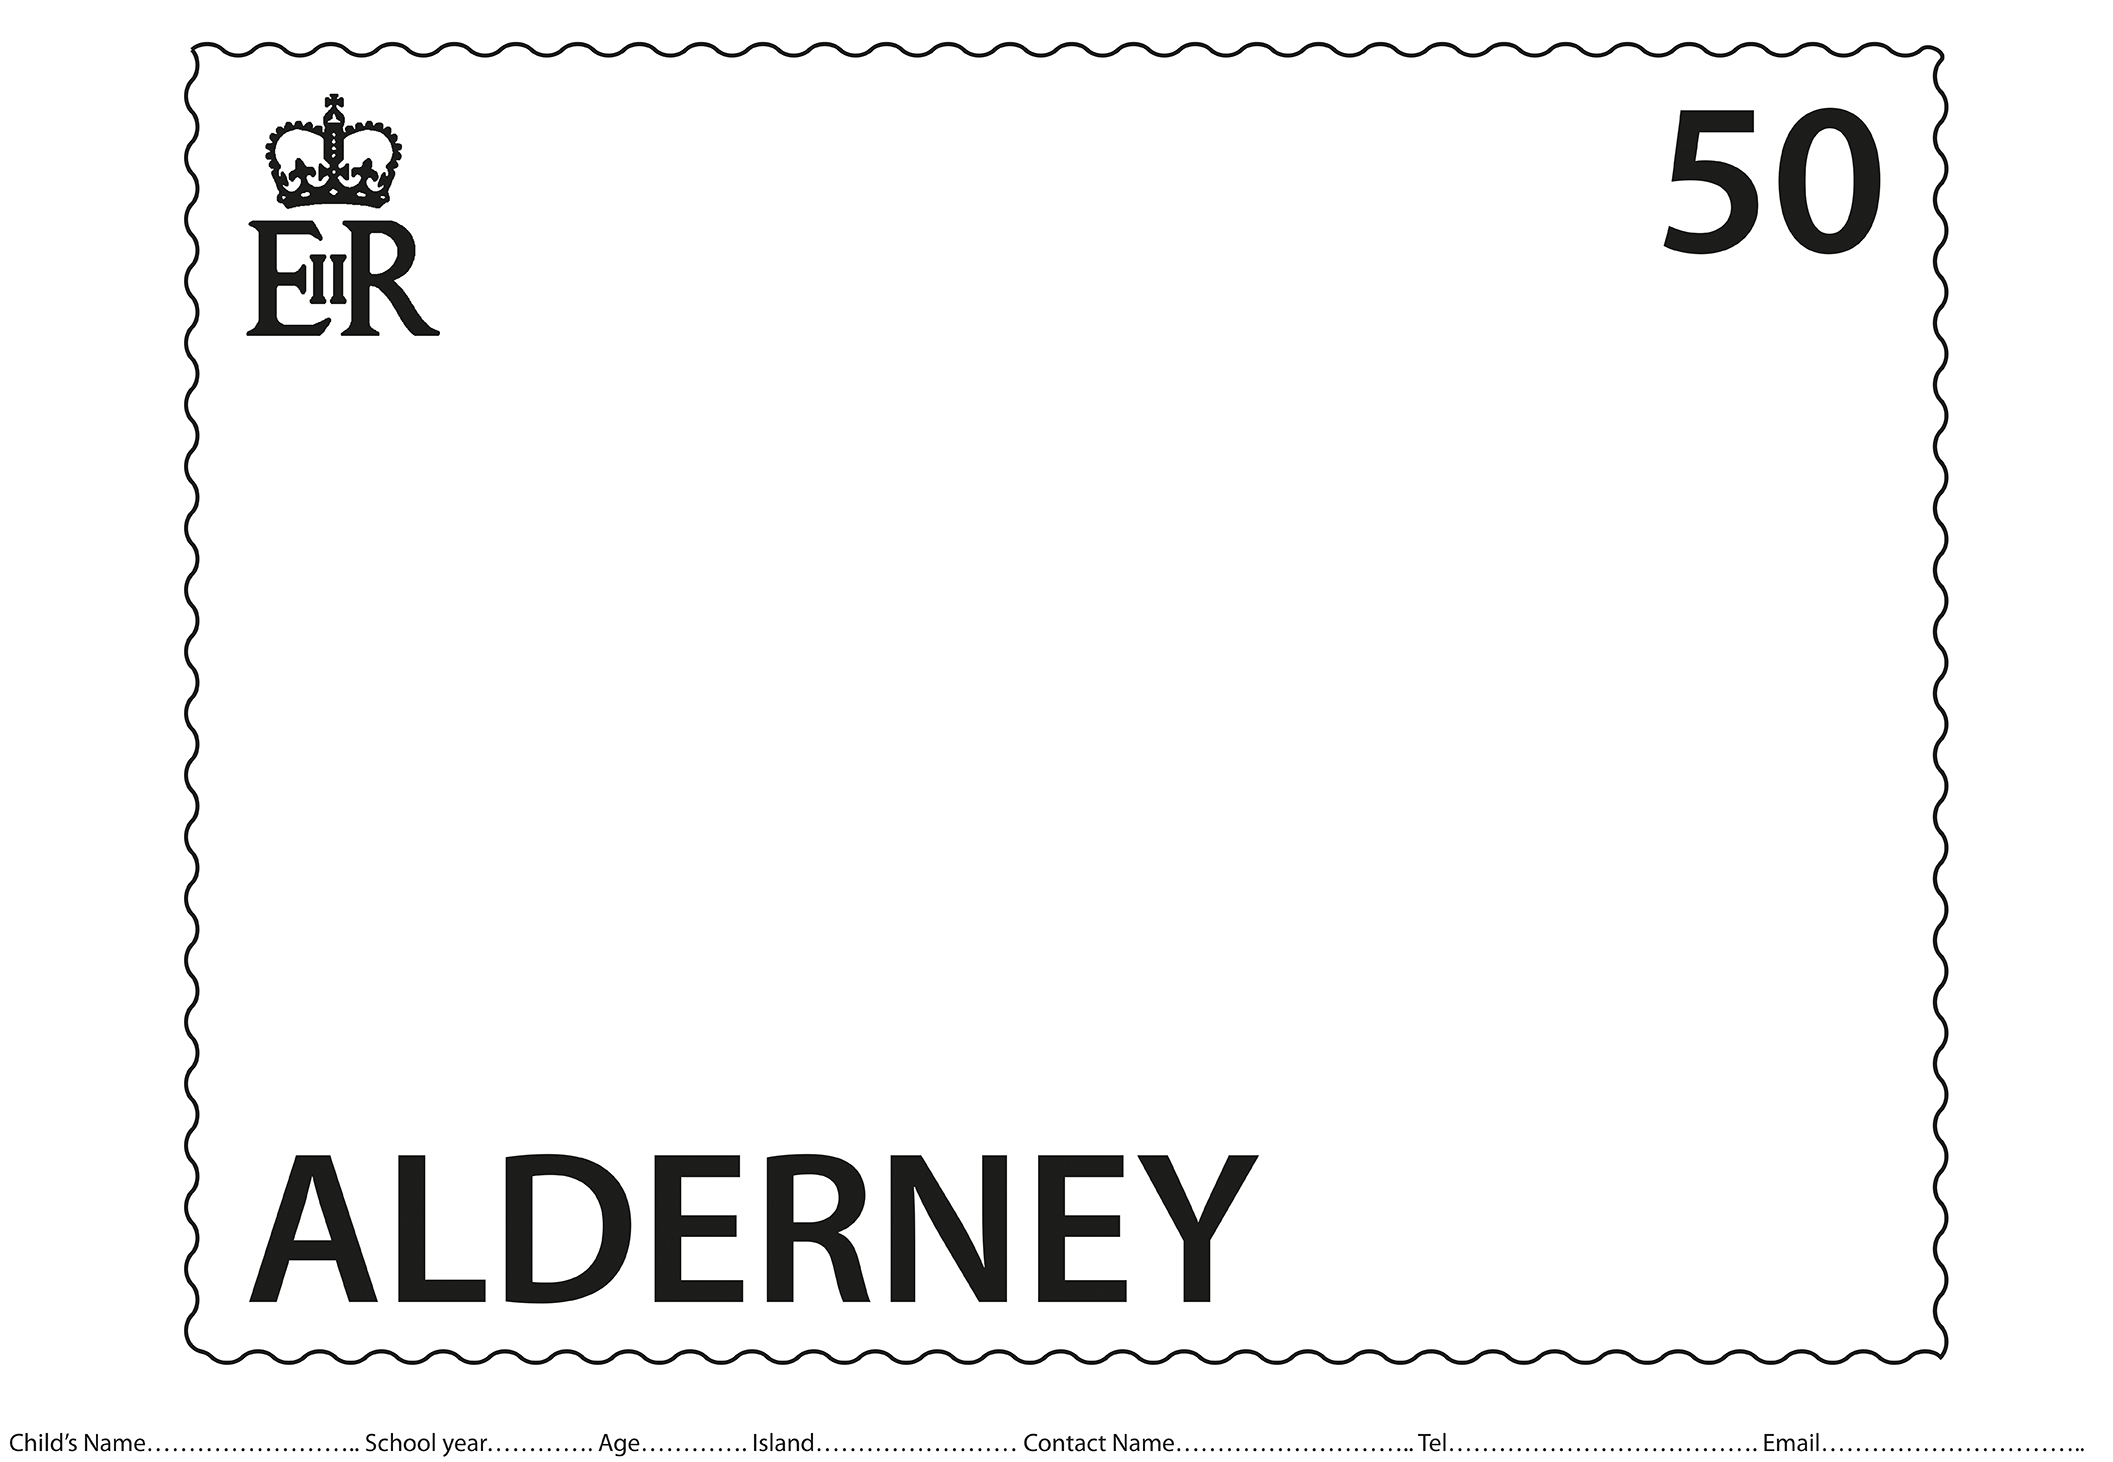 Local children invited to put their stamp on #AlderneySpirit charity competition